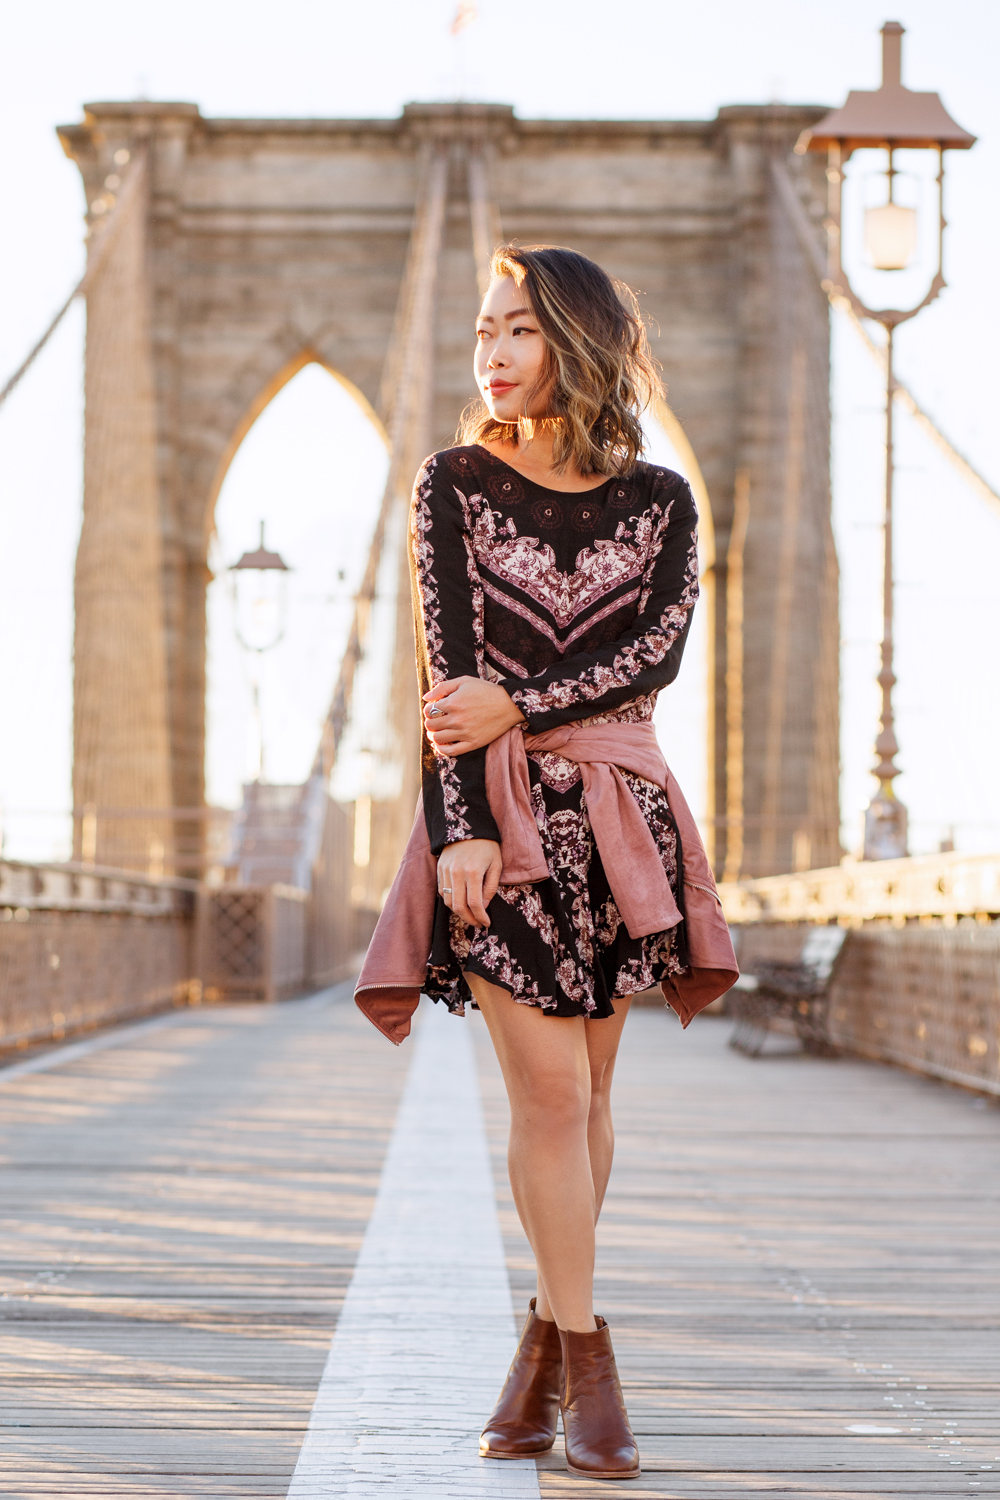 04brooklynbridge-nyc-newyork-sunrise-travel-style-fashion